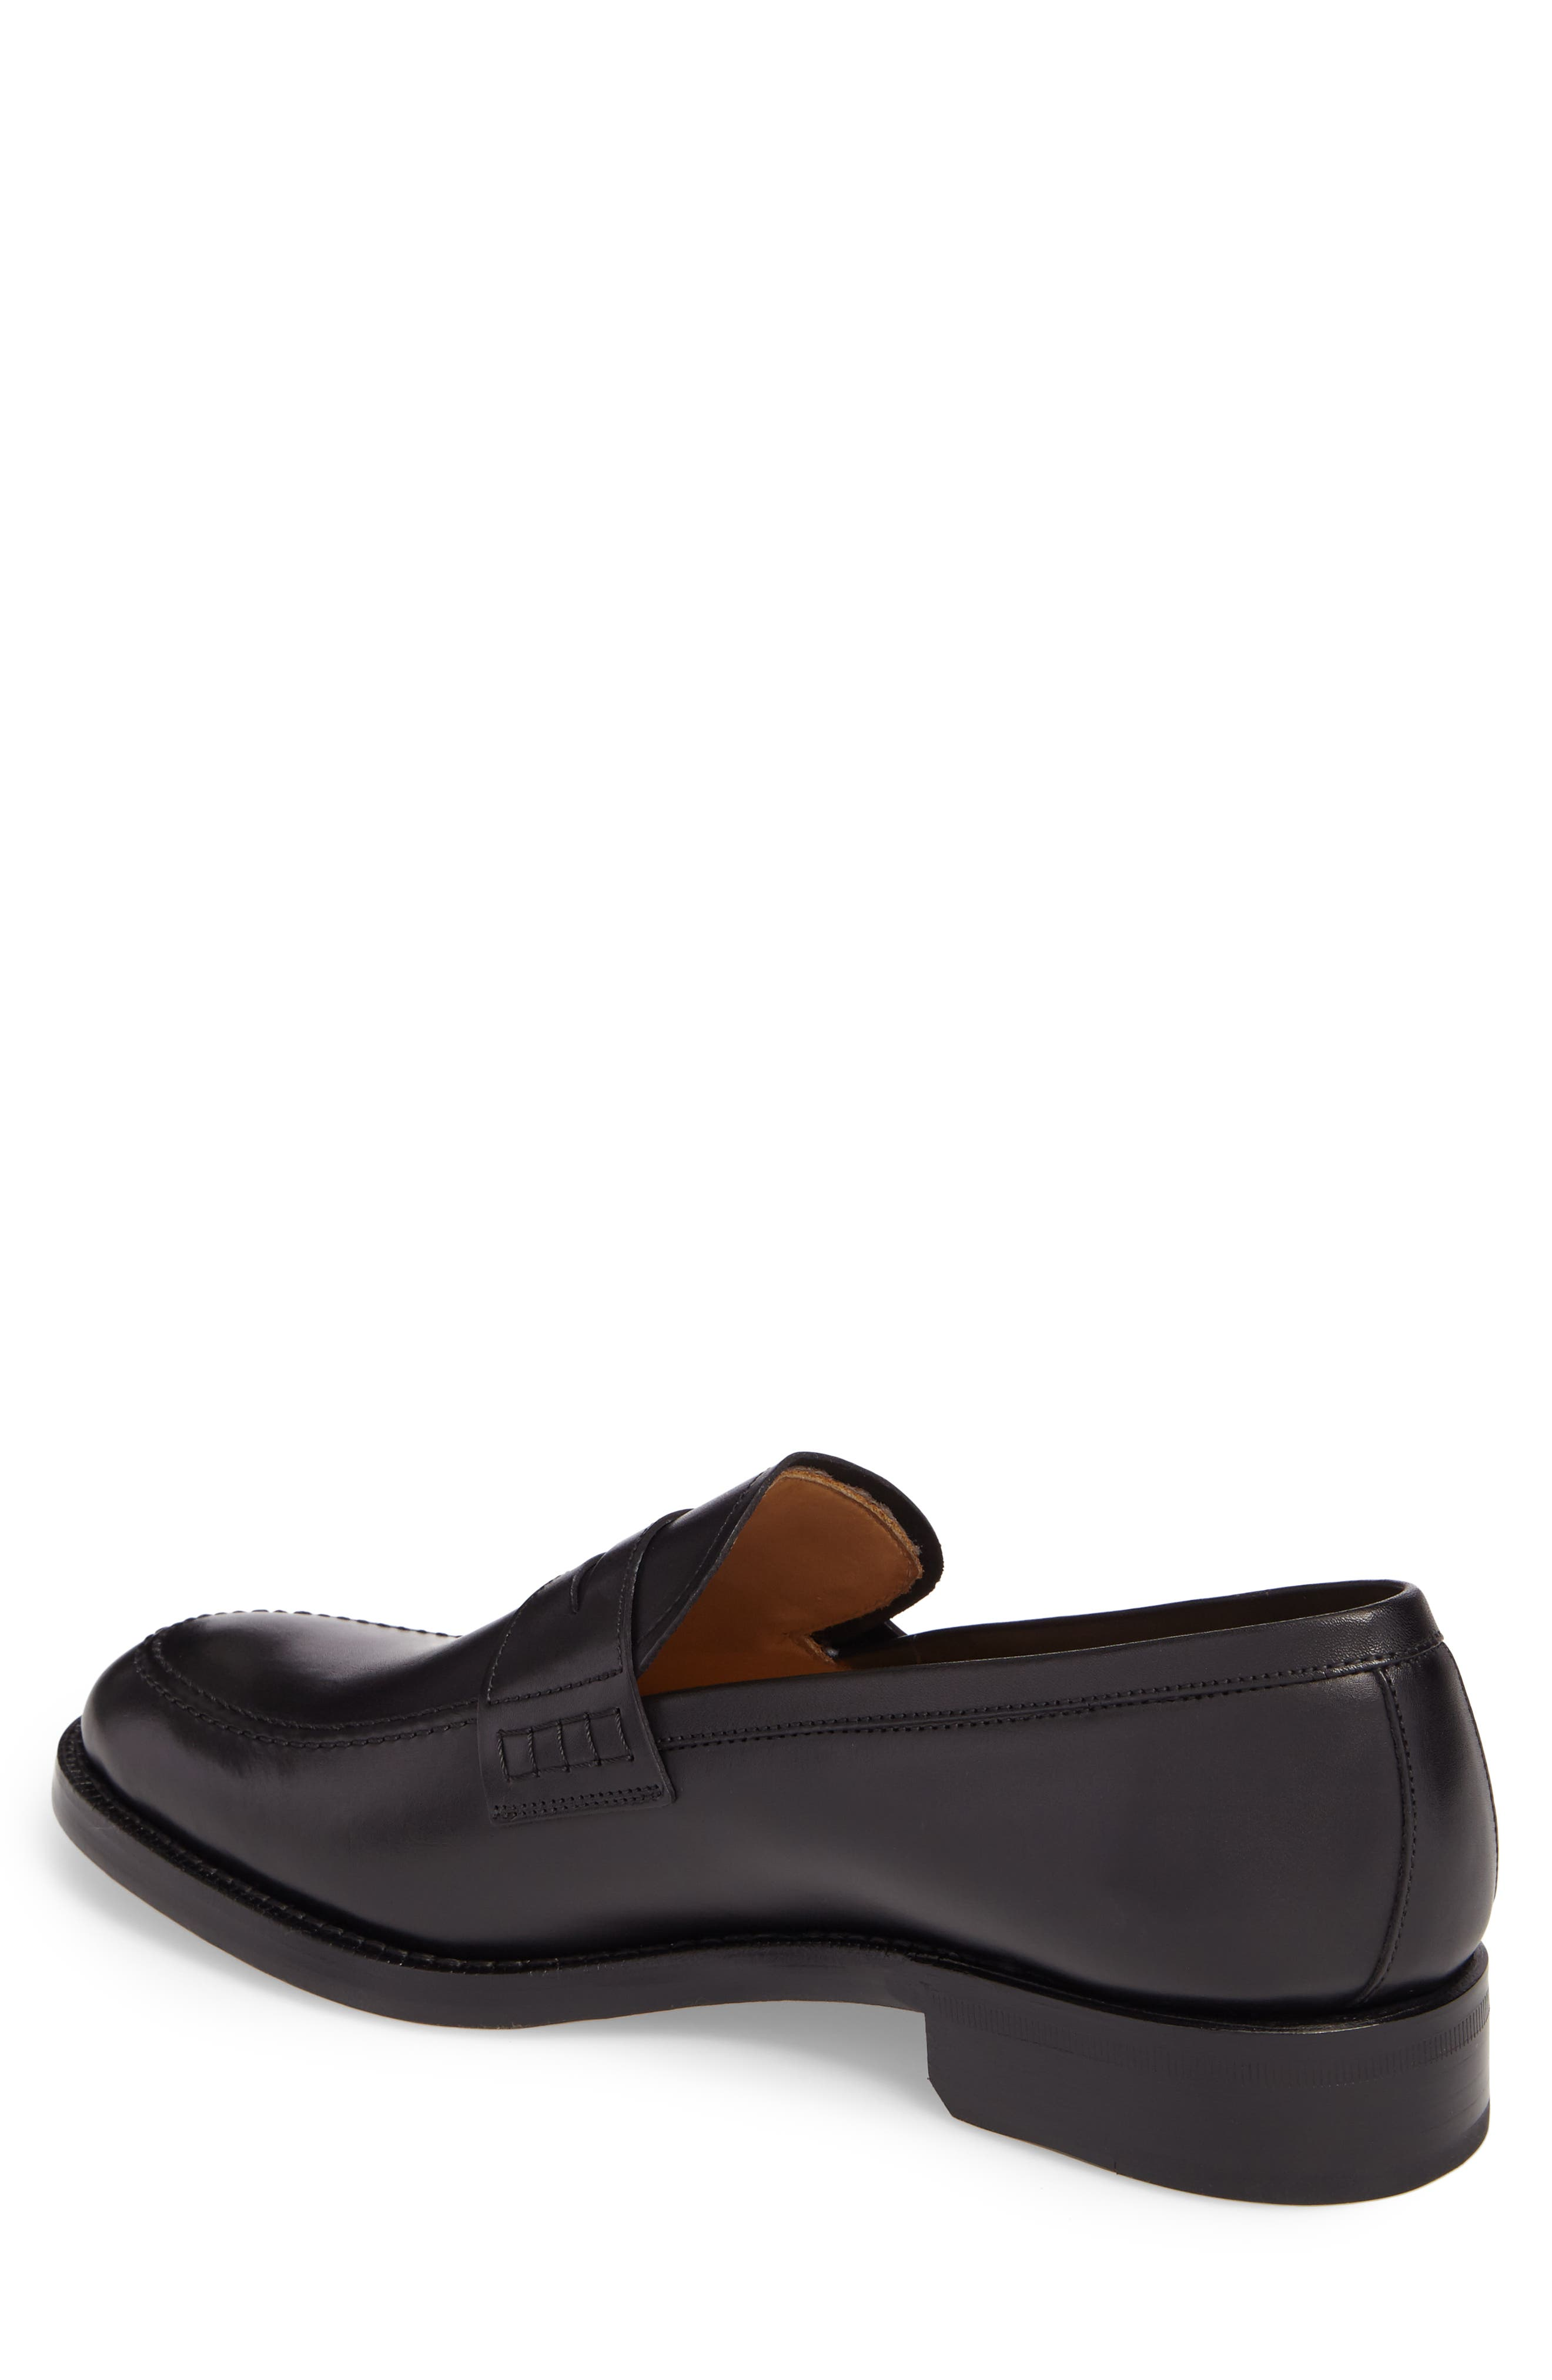 Archie Penny Loafer,                             Alternate thumbnail 2, color,                             001